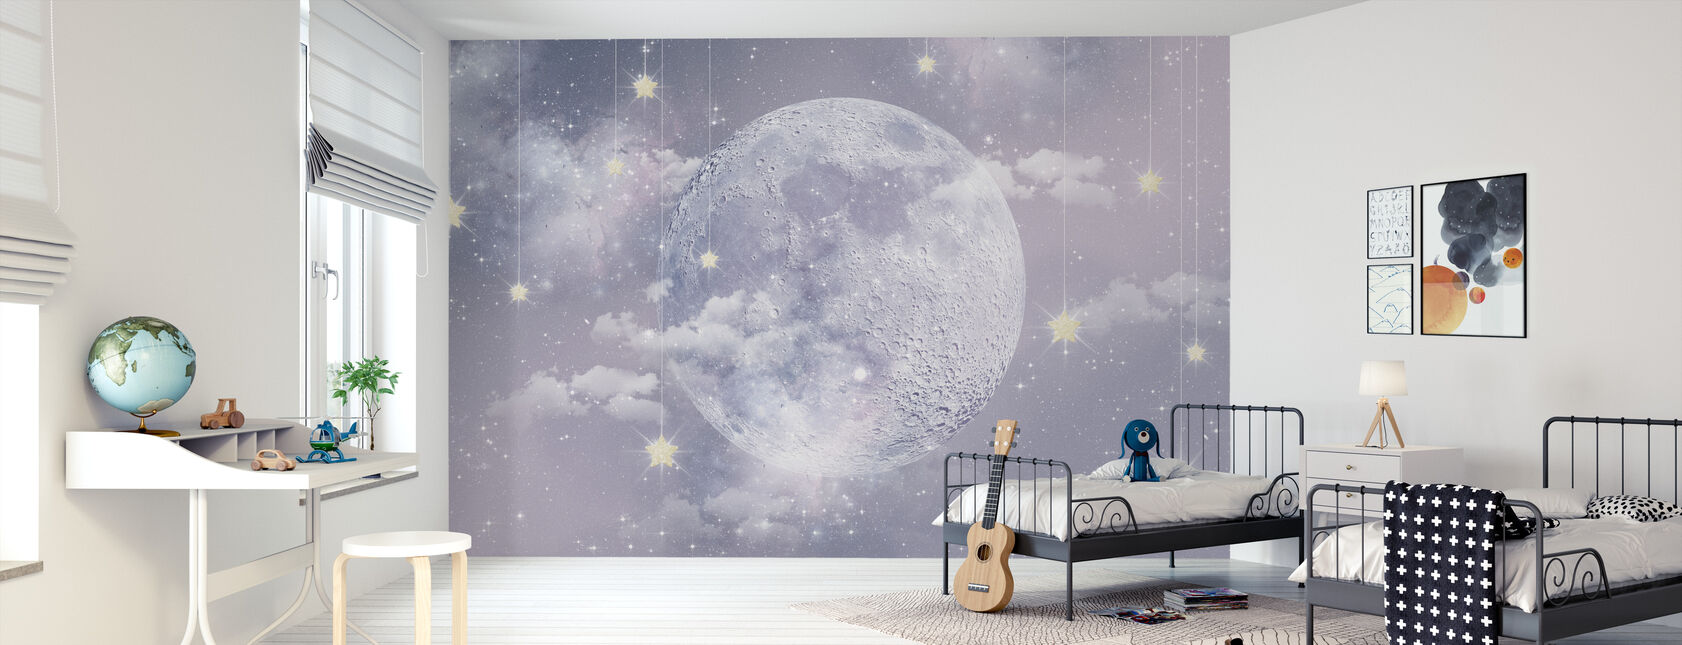 Moon with stars - Wallpaper - Kids Room